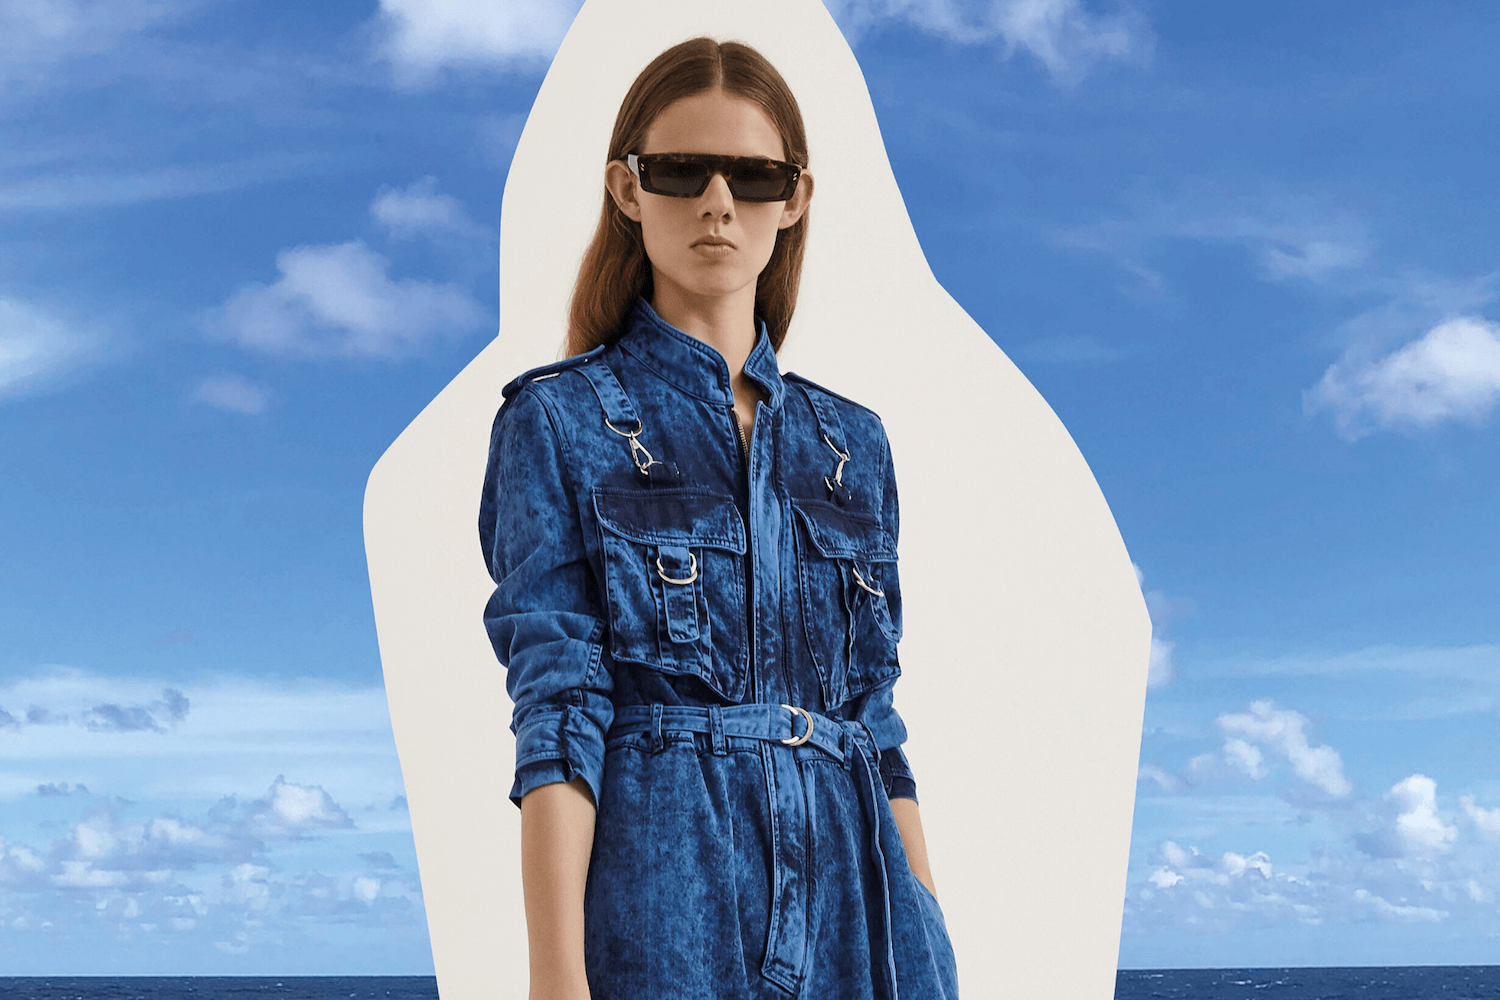 Biodegradable Jeans: a collaboration between Stella McCartney and Candiani Denim